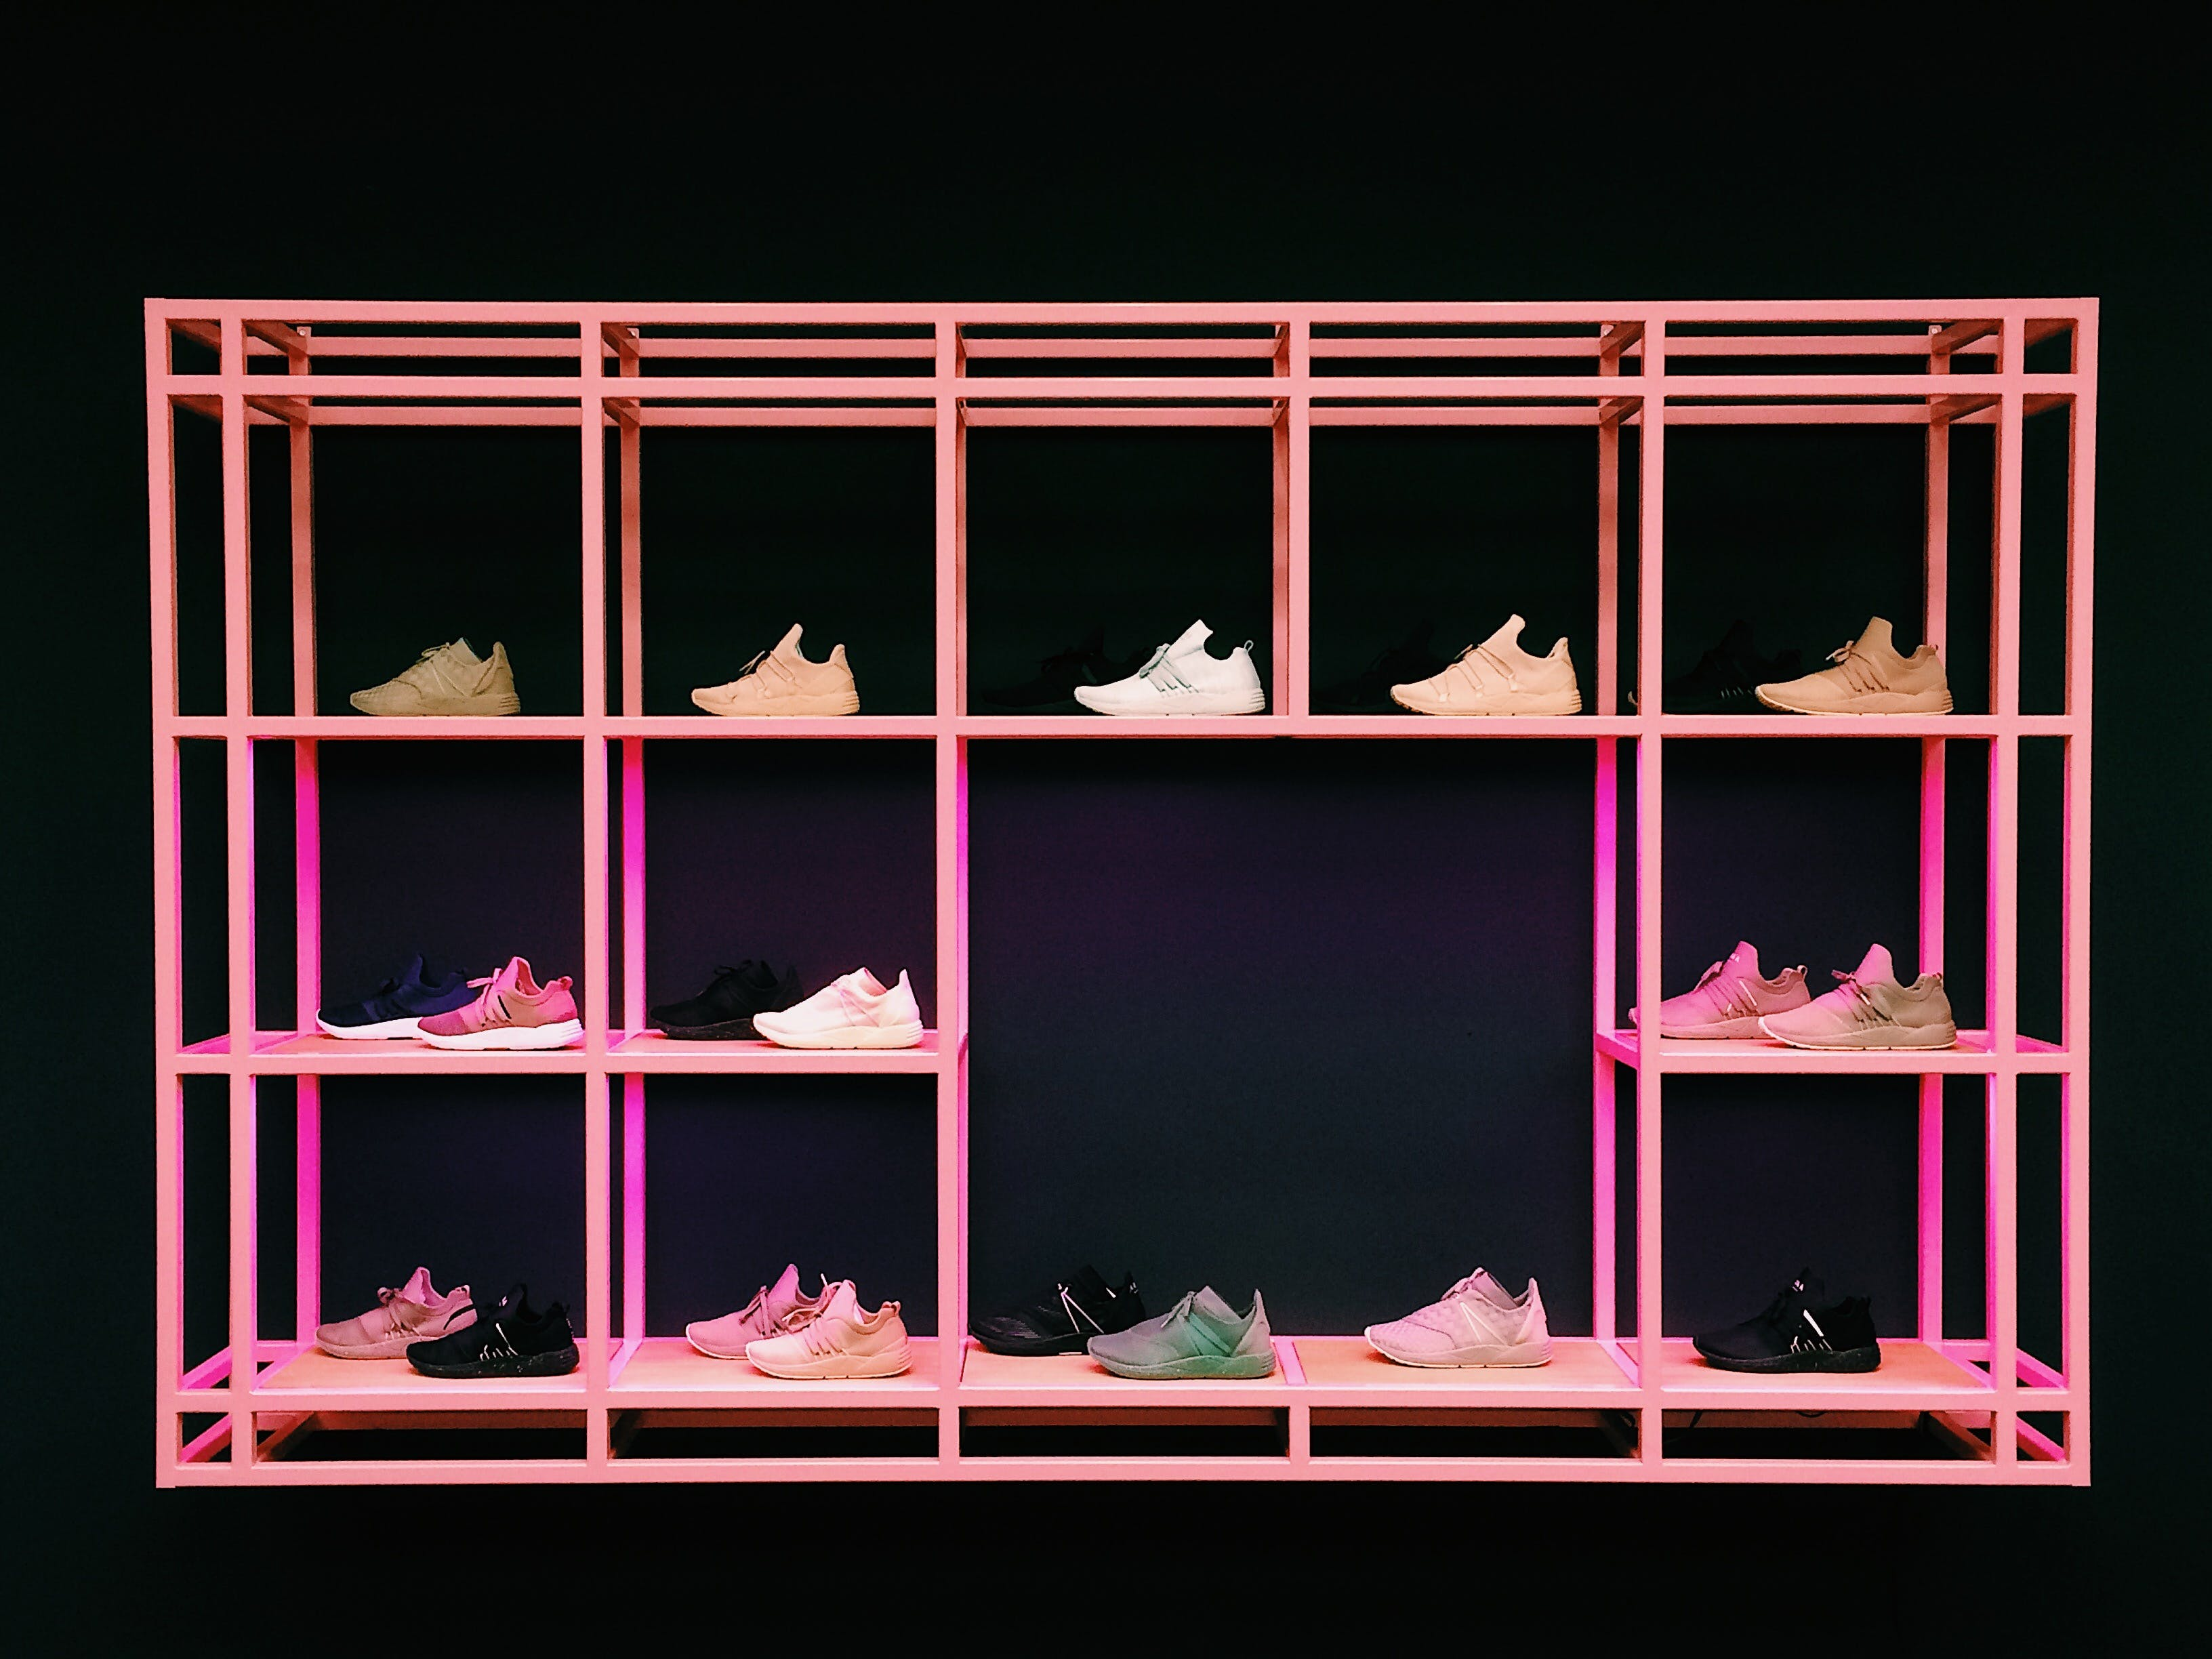 Pink Shoe Rack With Assorted-color-and-style Shoes